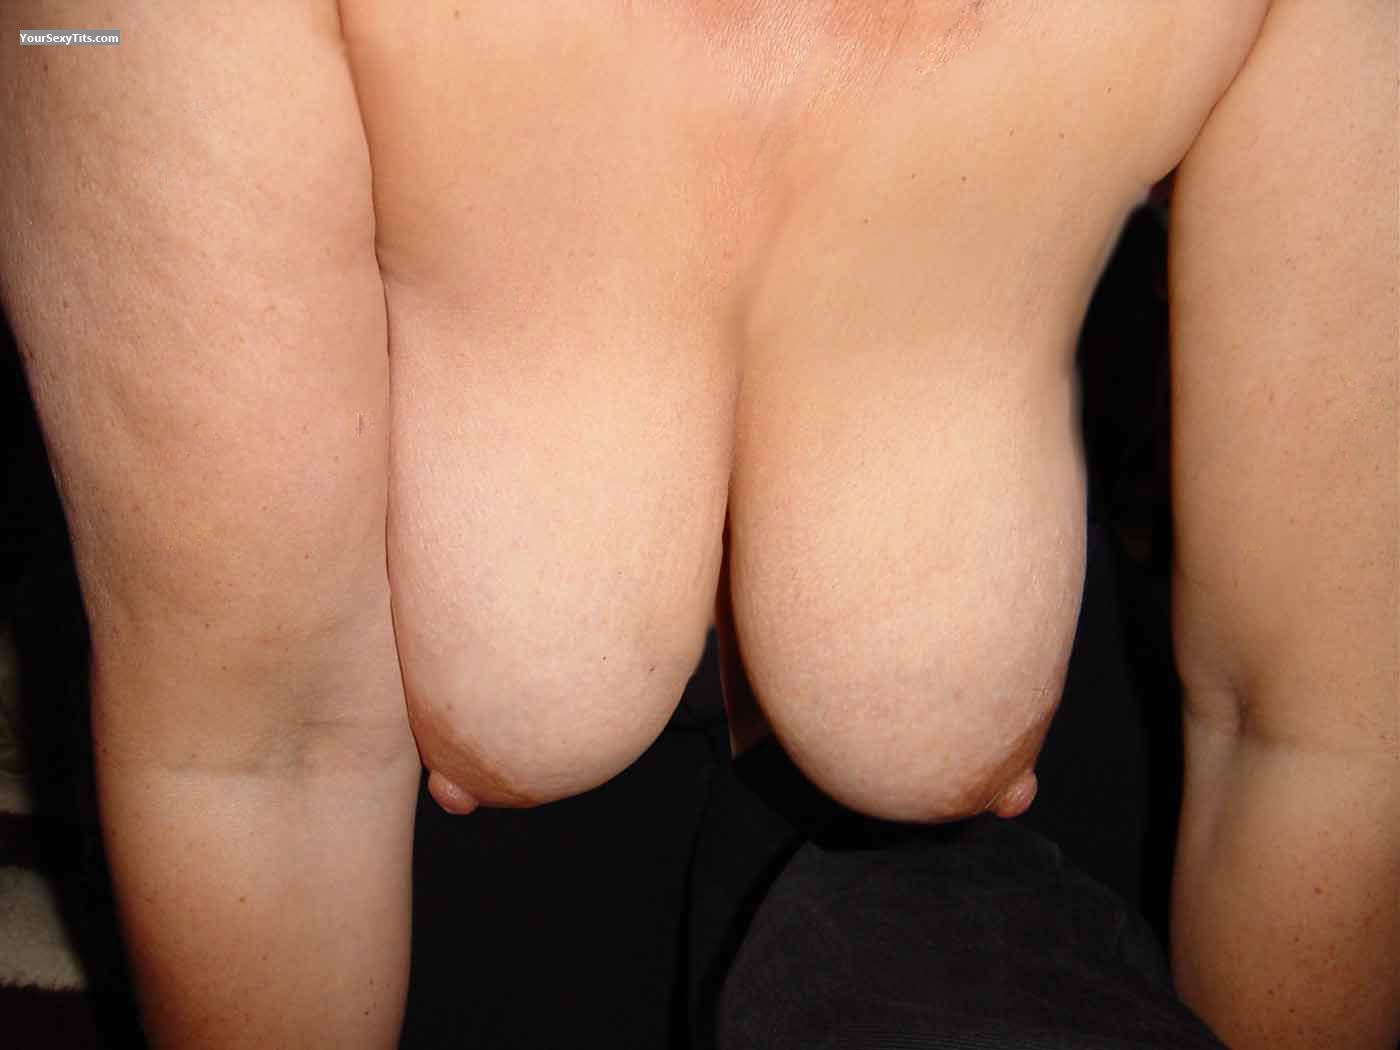 Medium Tits Of My Wife Andrea